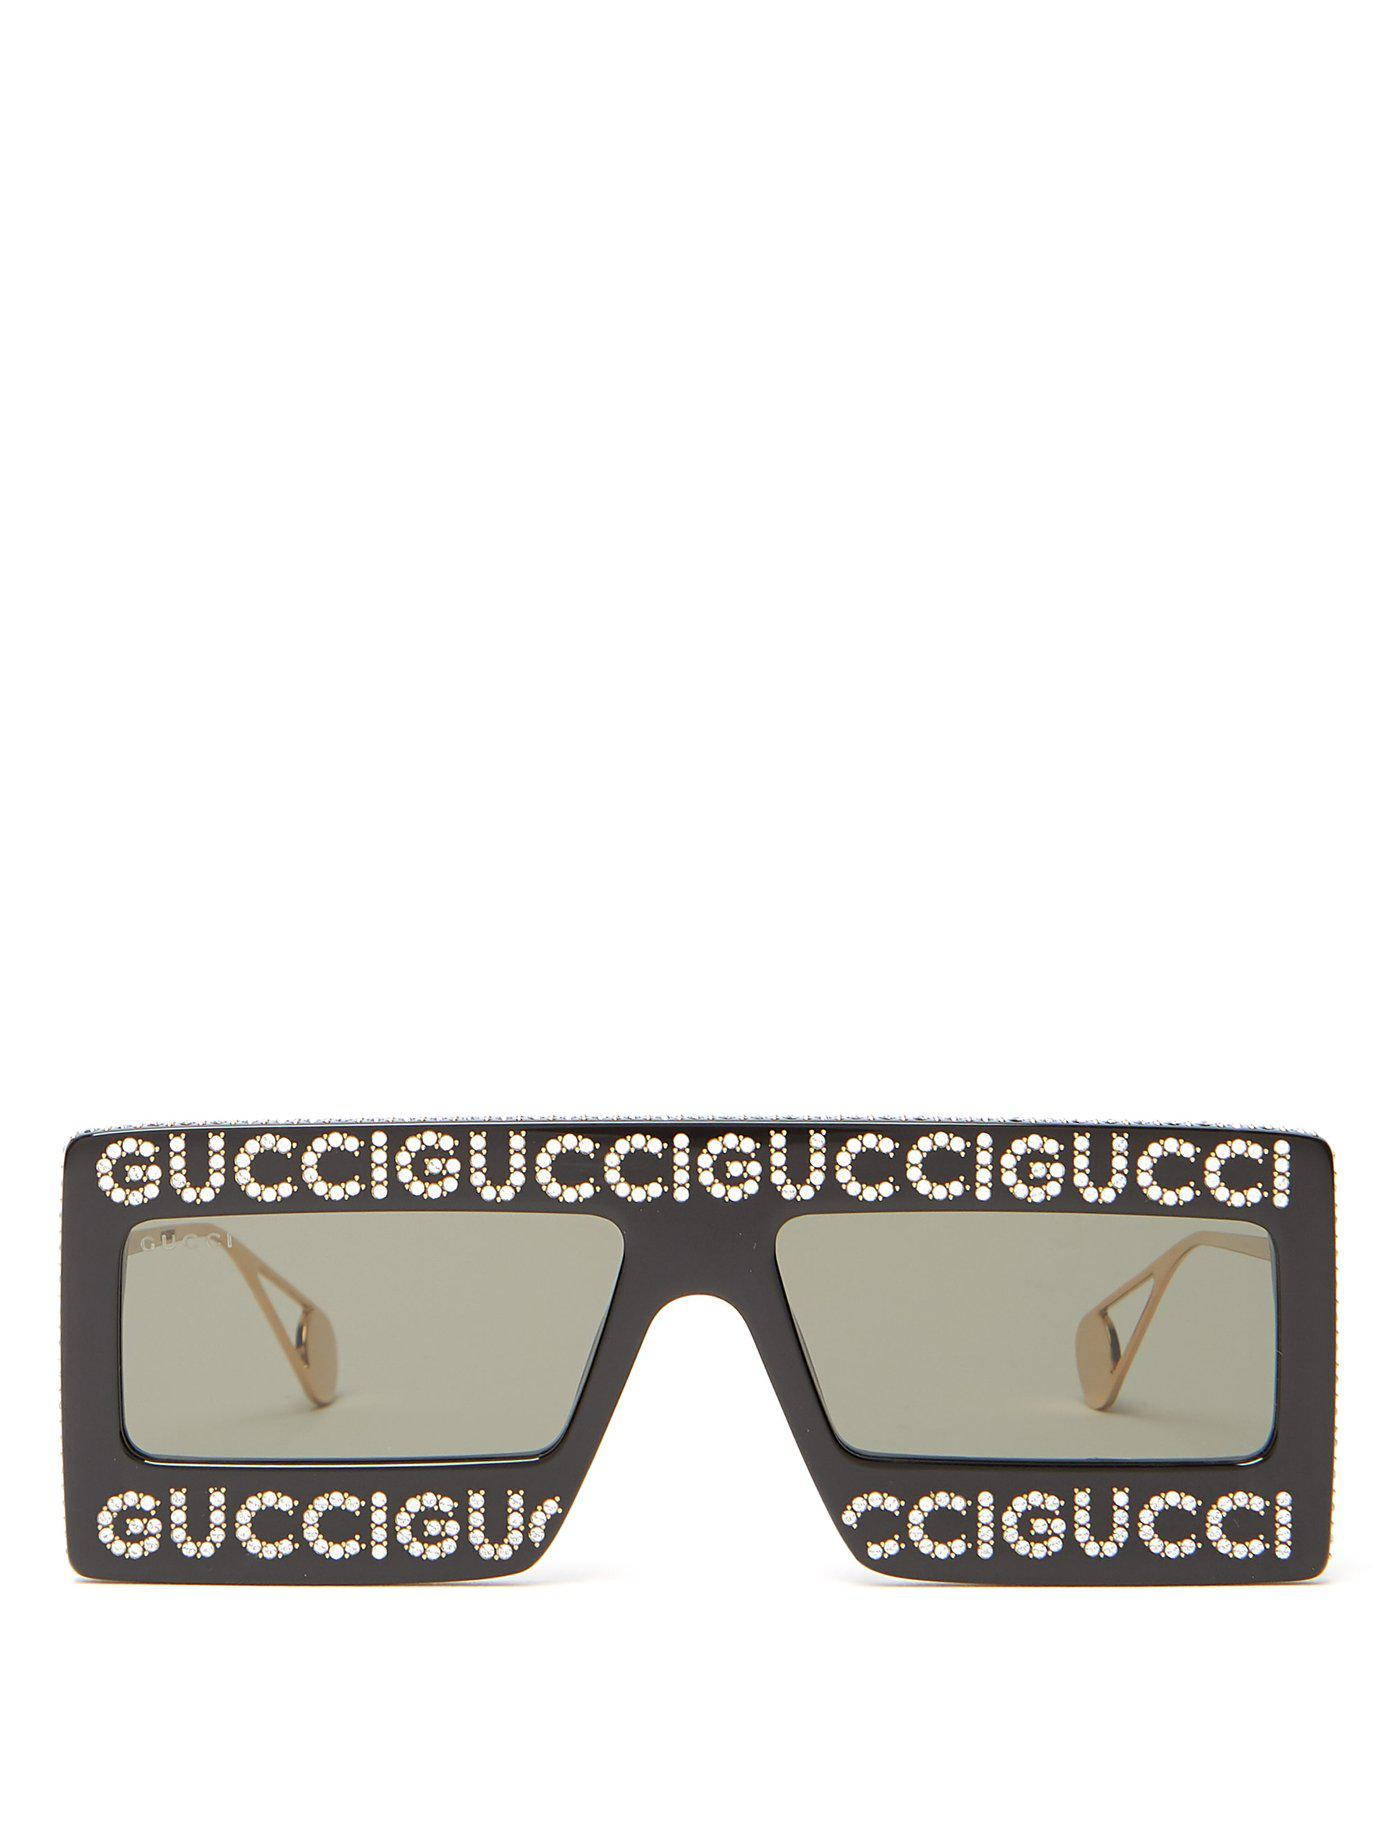 60f9e8c3697 Lyst - Gucci Hollywood Forever Embellished Sunglasses in Black for Men